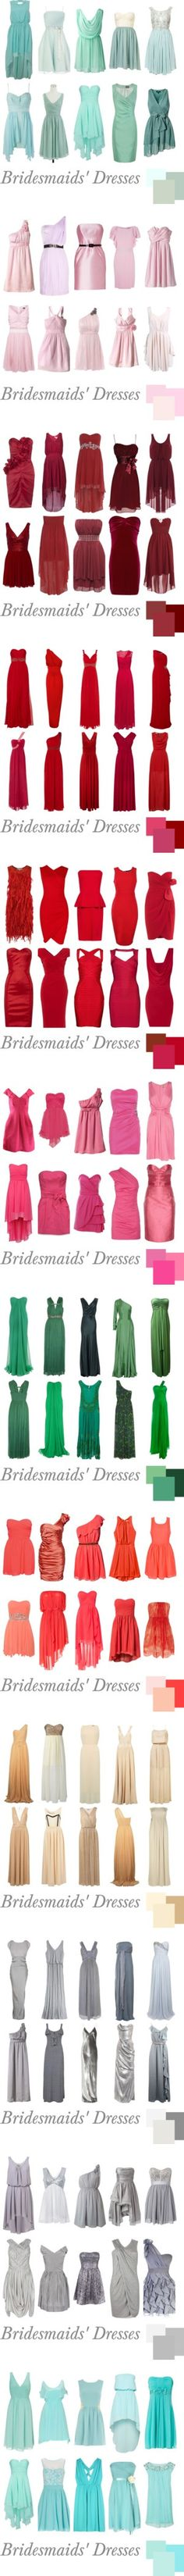 Found this awhile ago, it has tons of bridesmaids dress' colors and styles, could give you some ideas!